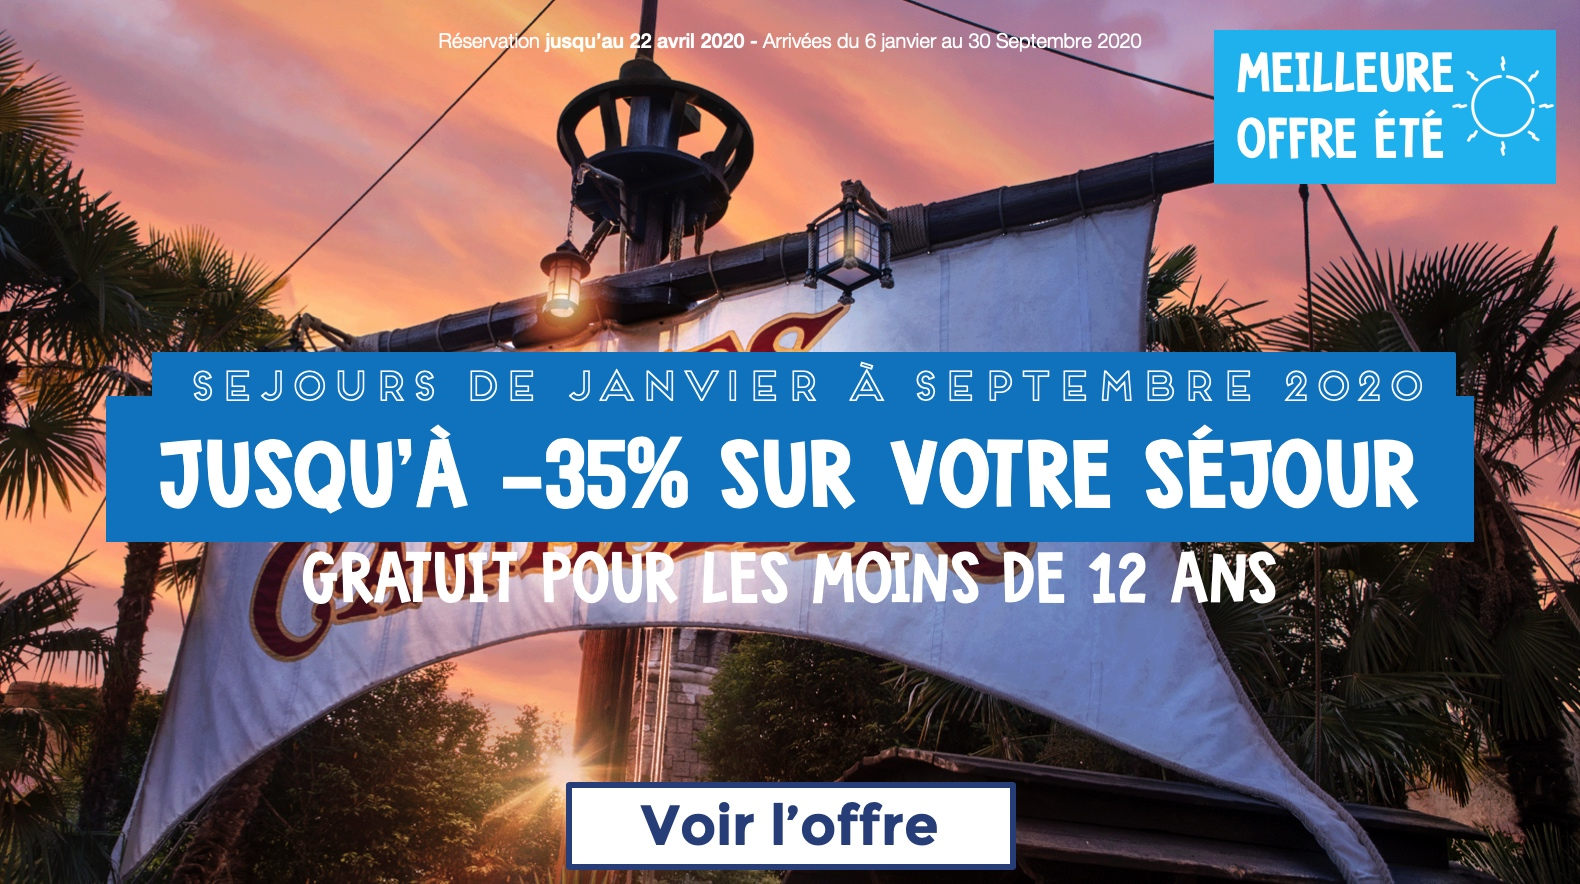 promotion séjour pas cher disneyland paris disney printemps été 2020 disney légendes de la force star wars celebration la reine des neiges saison super heros marvel festival roi lion et de la jungle pas cher disney